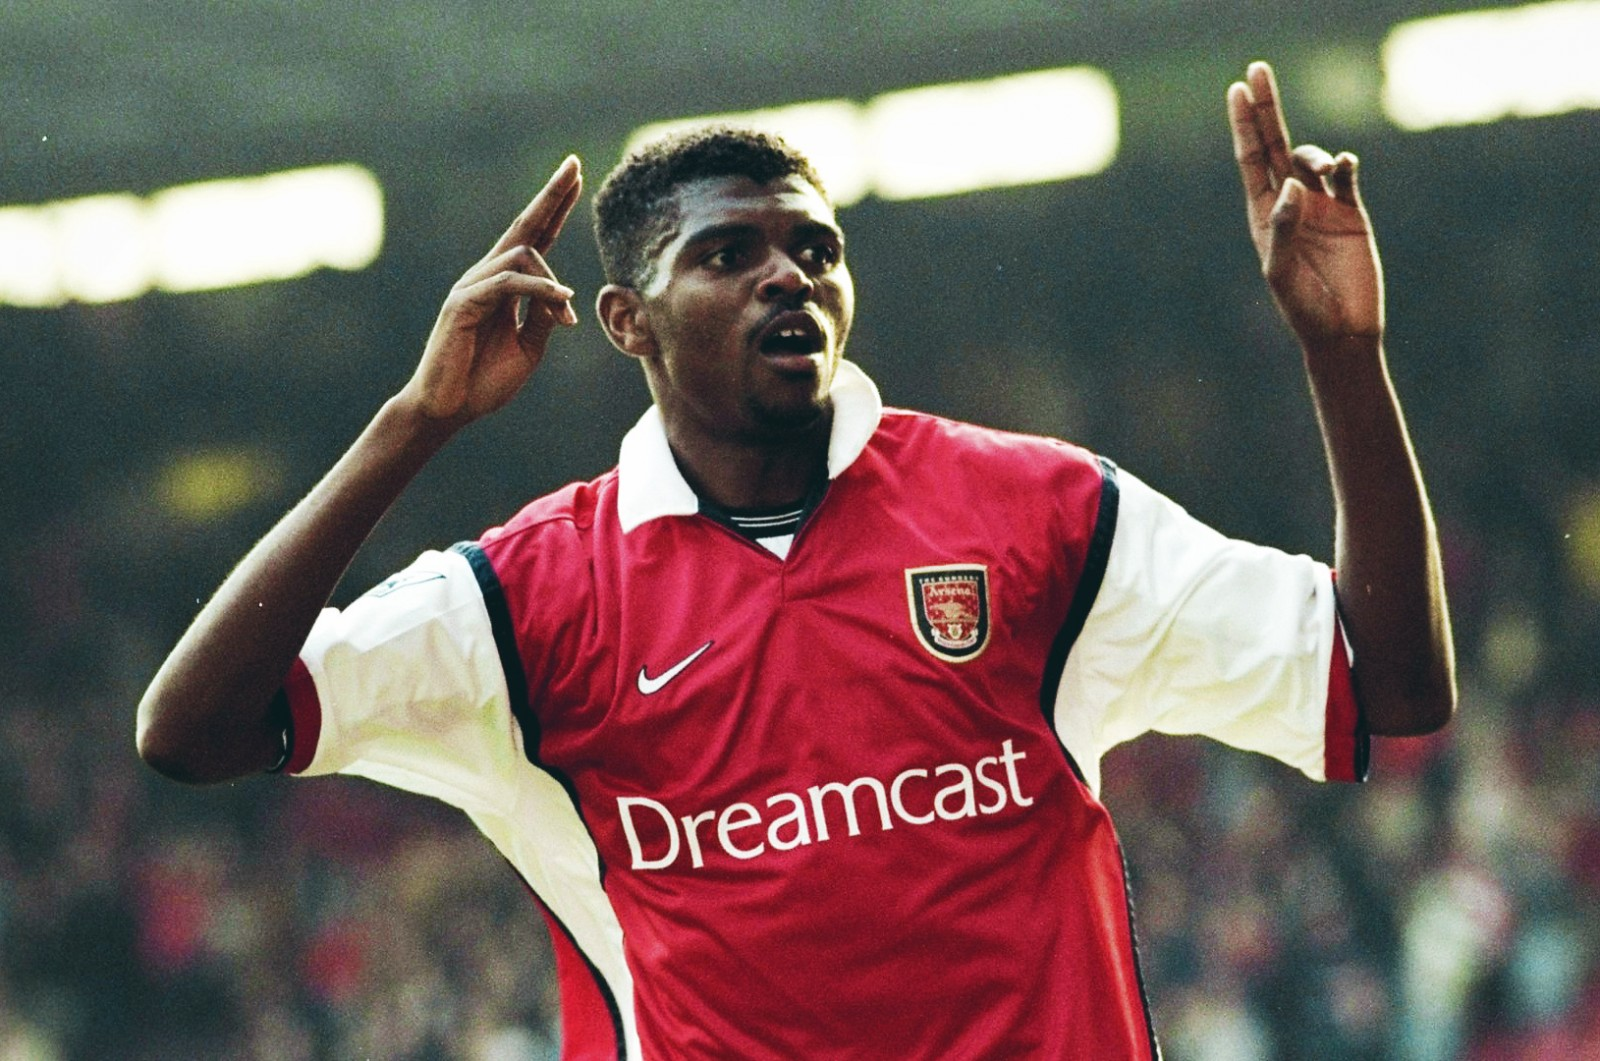 Nwankwo Kanu slams Arsenal board for current woes at the Emirates